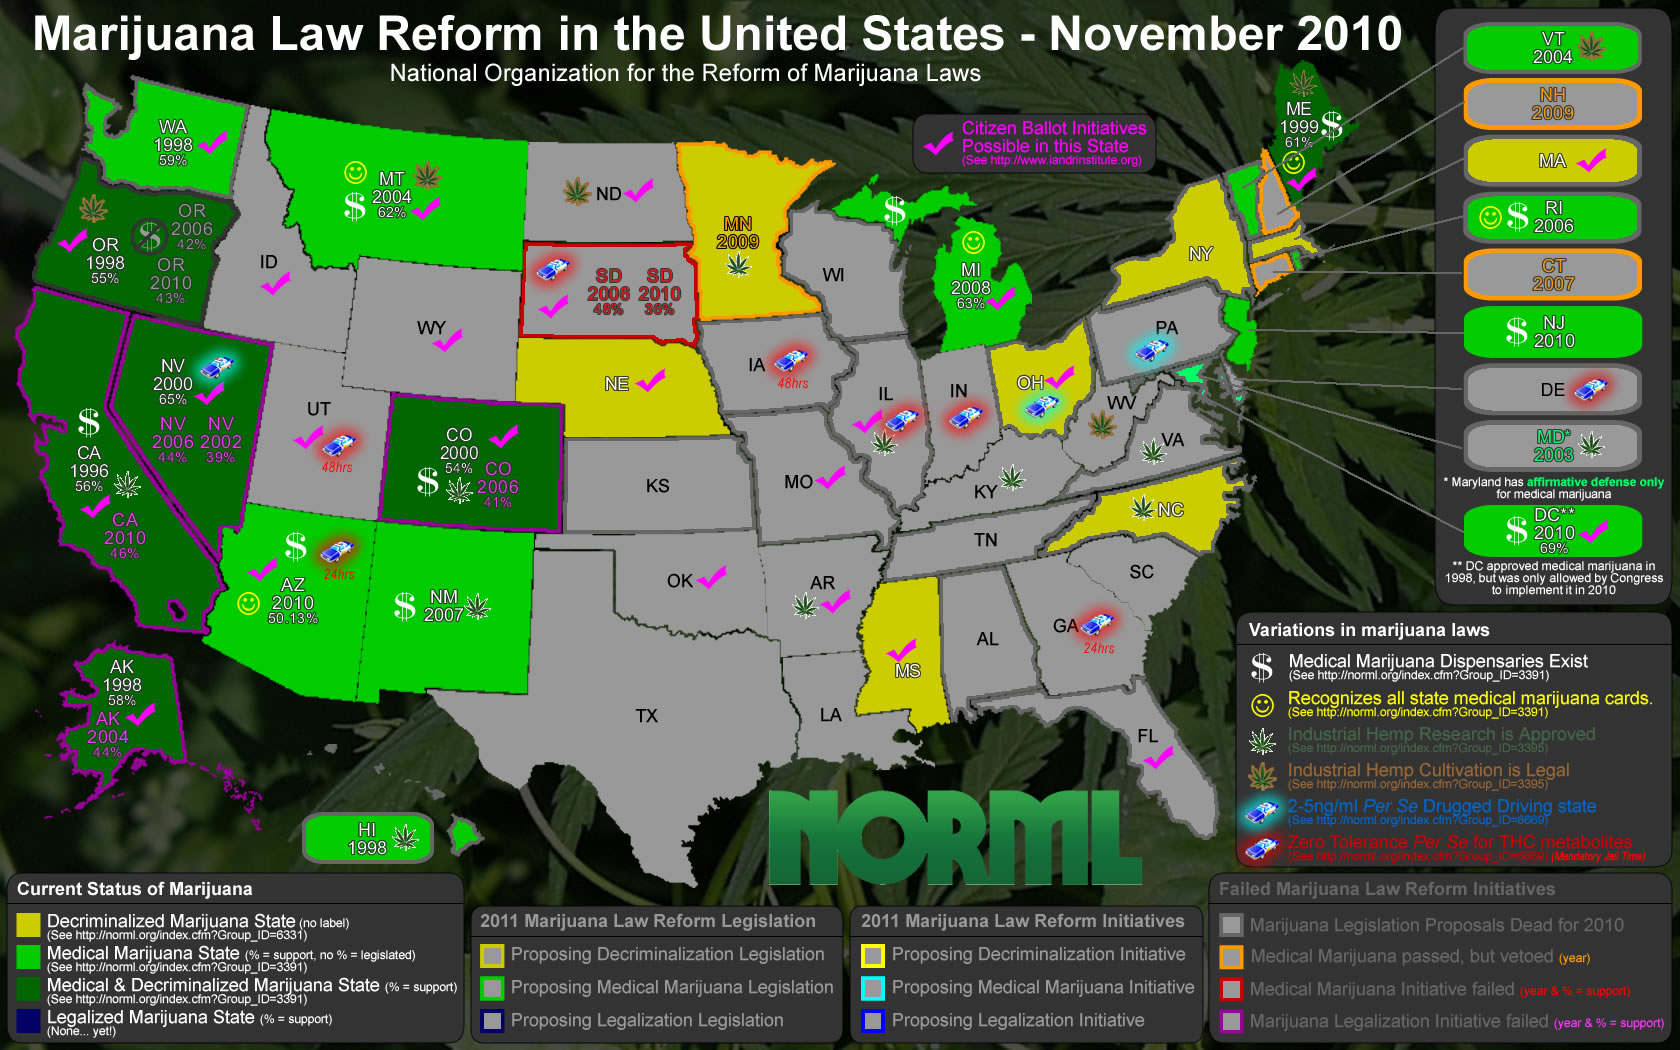 Bron: www.norml.org